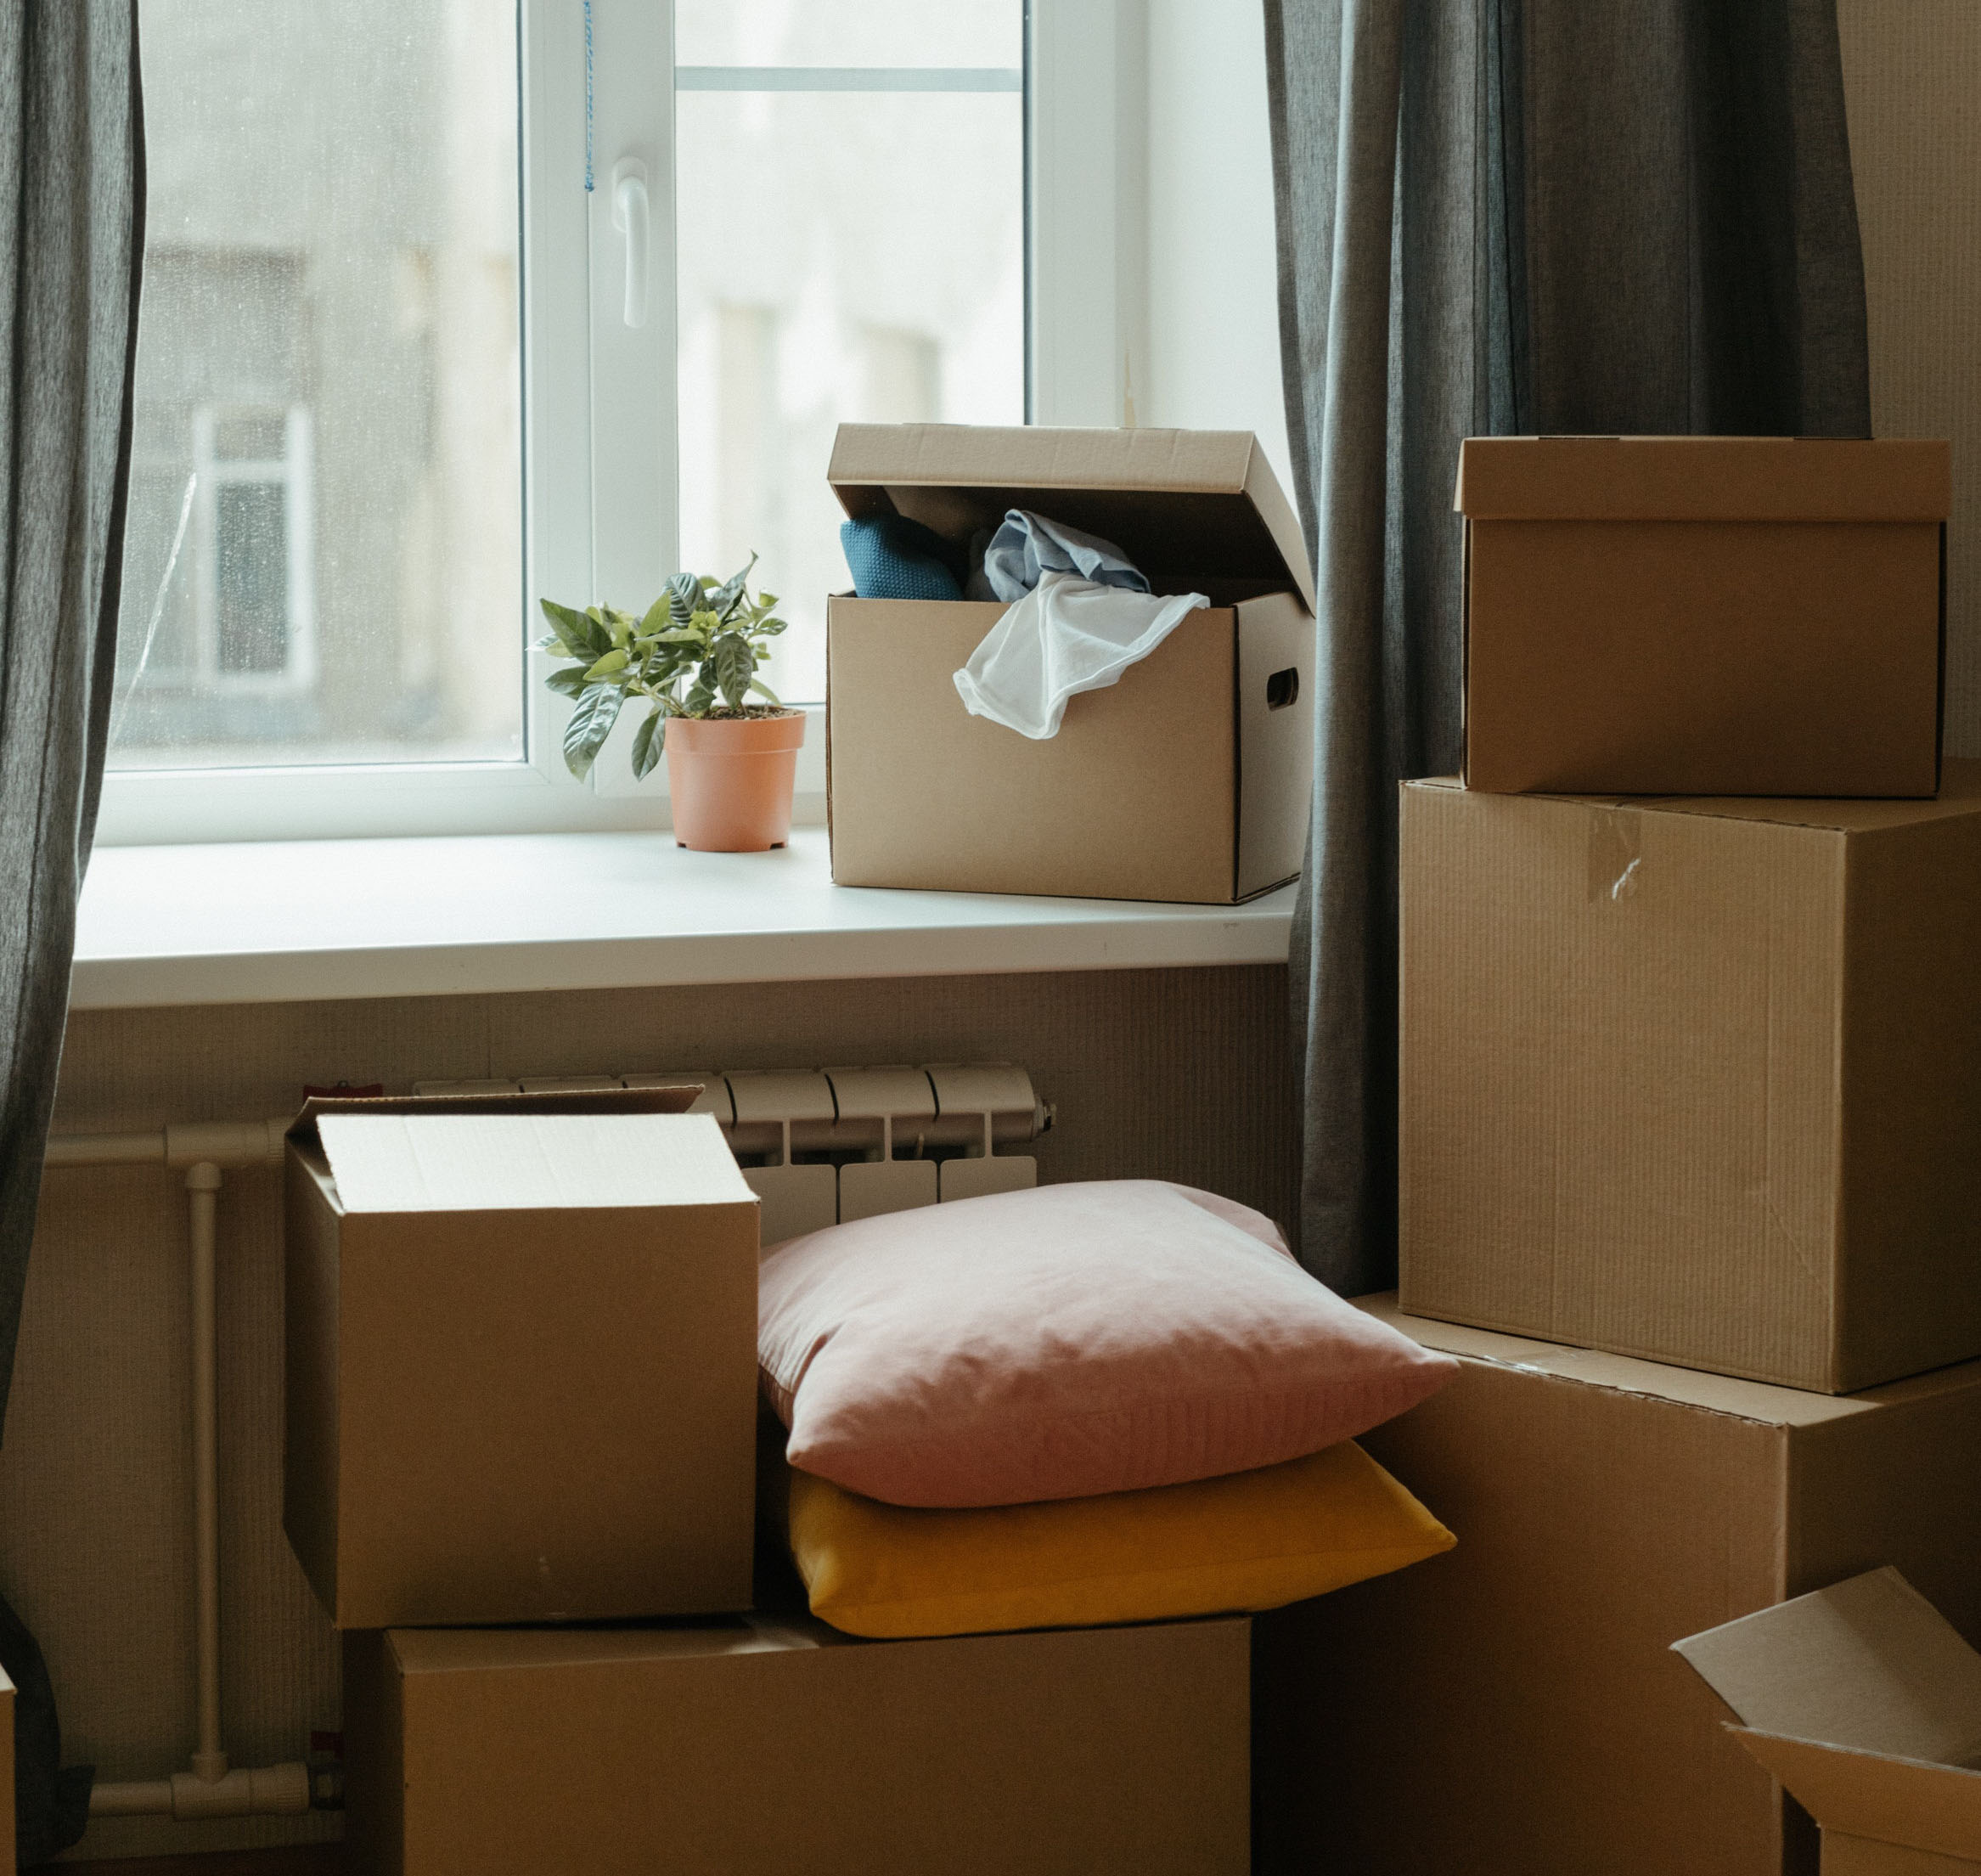 Moving boxes in an apartment